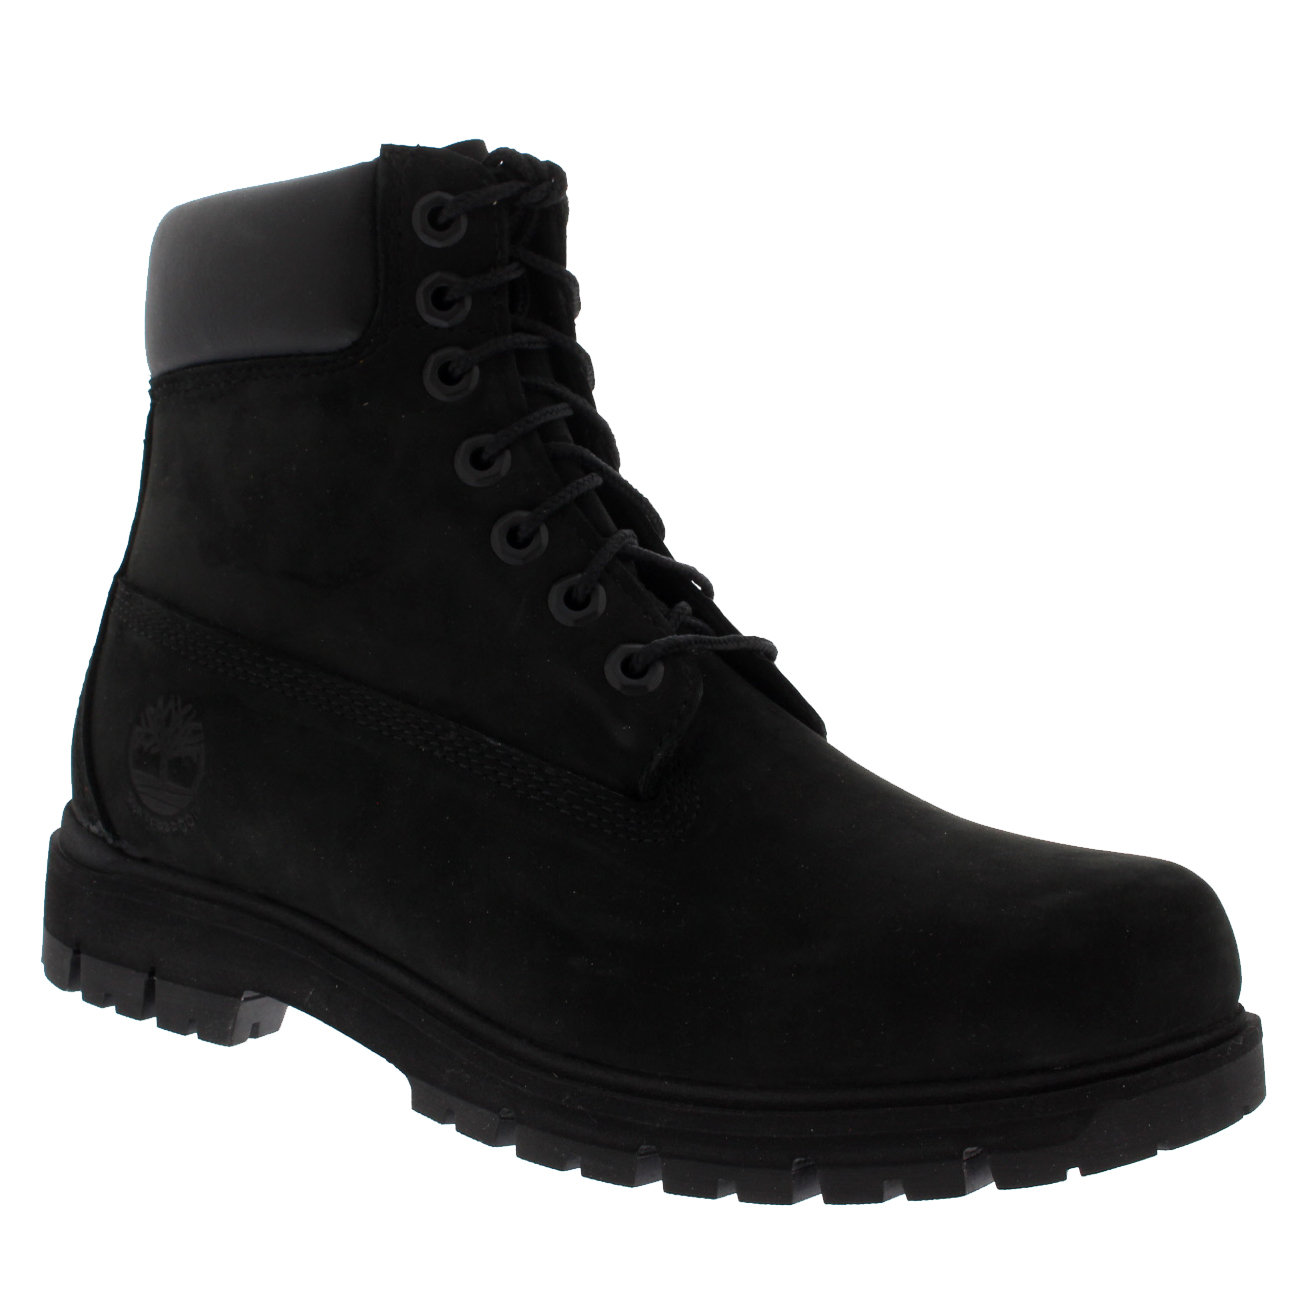 Mens Timberland Radford 6 Inch Nubuck Waterproof Winter Snow Ankle ... cc07c4530a7